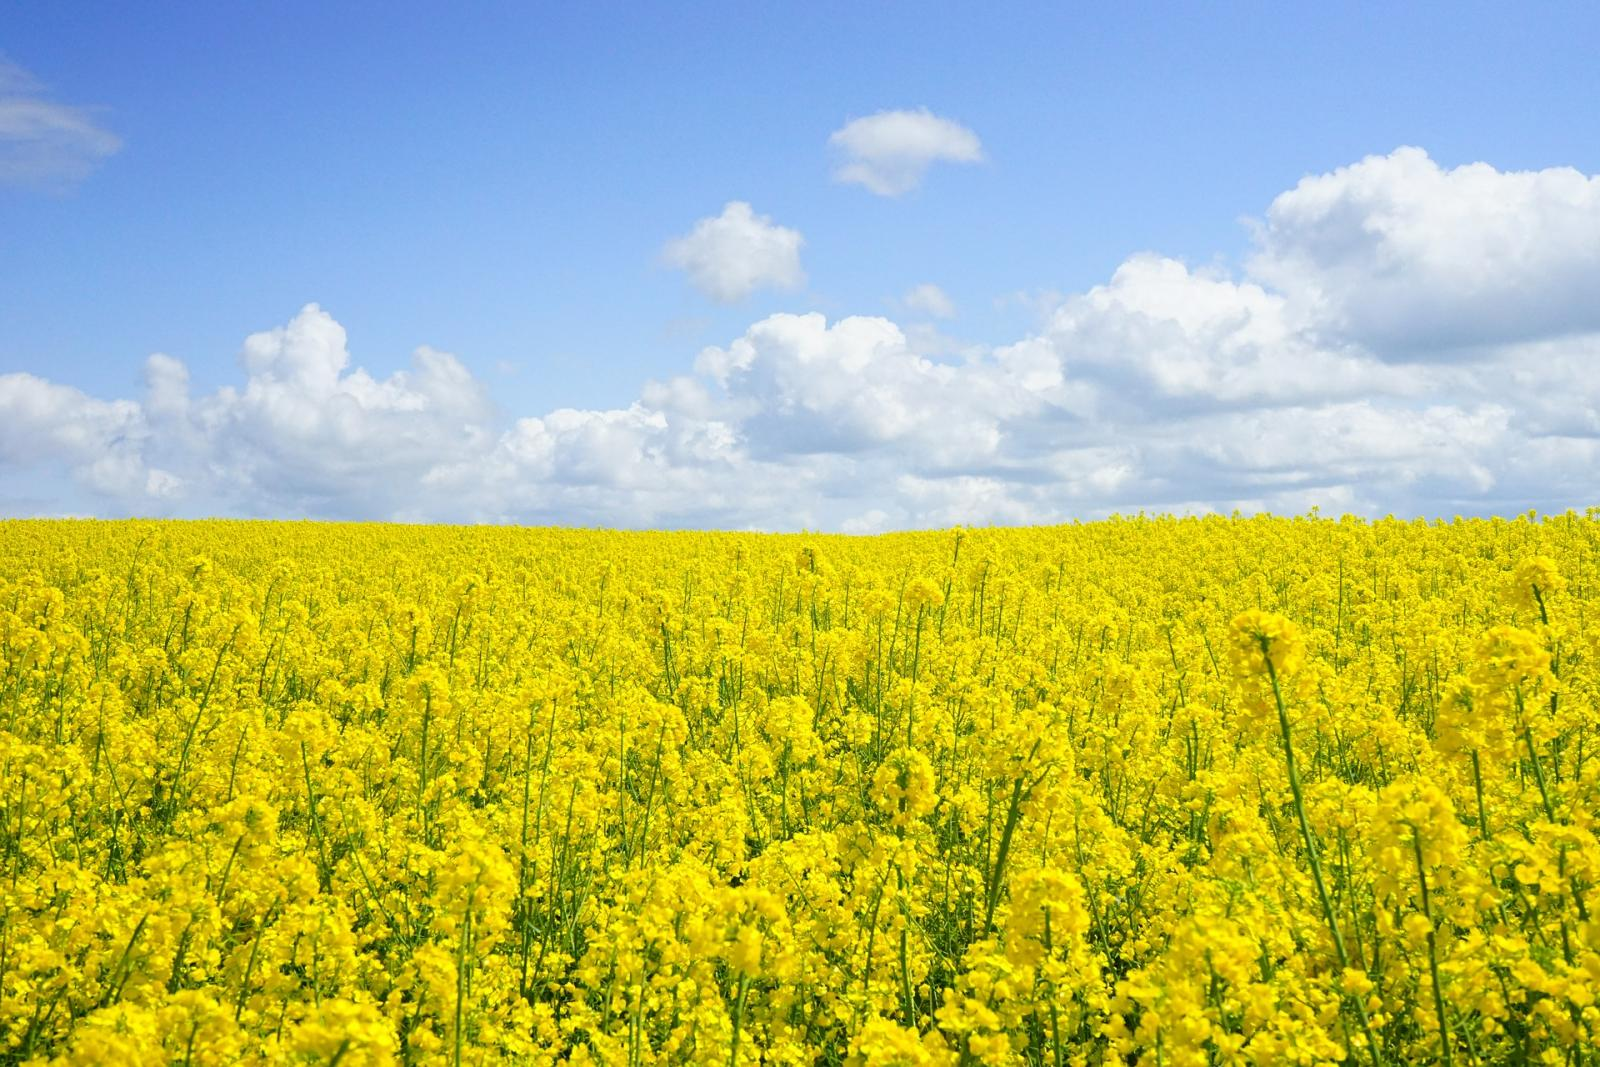 Field of rapeseed. Photo credit: Pixabay